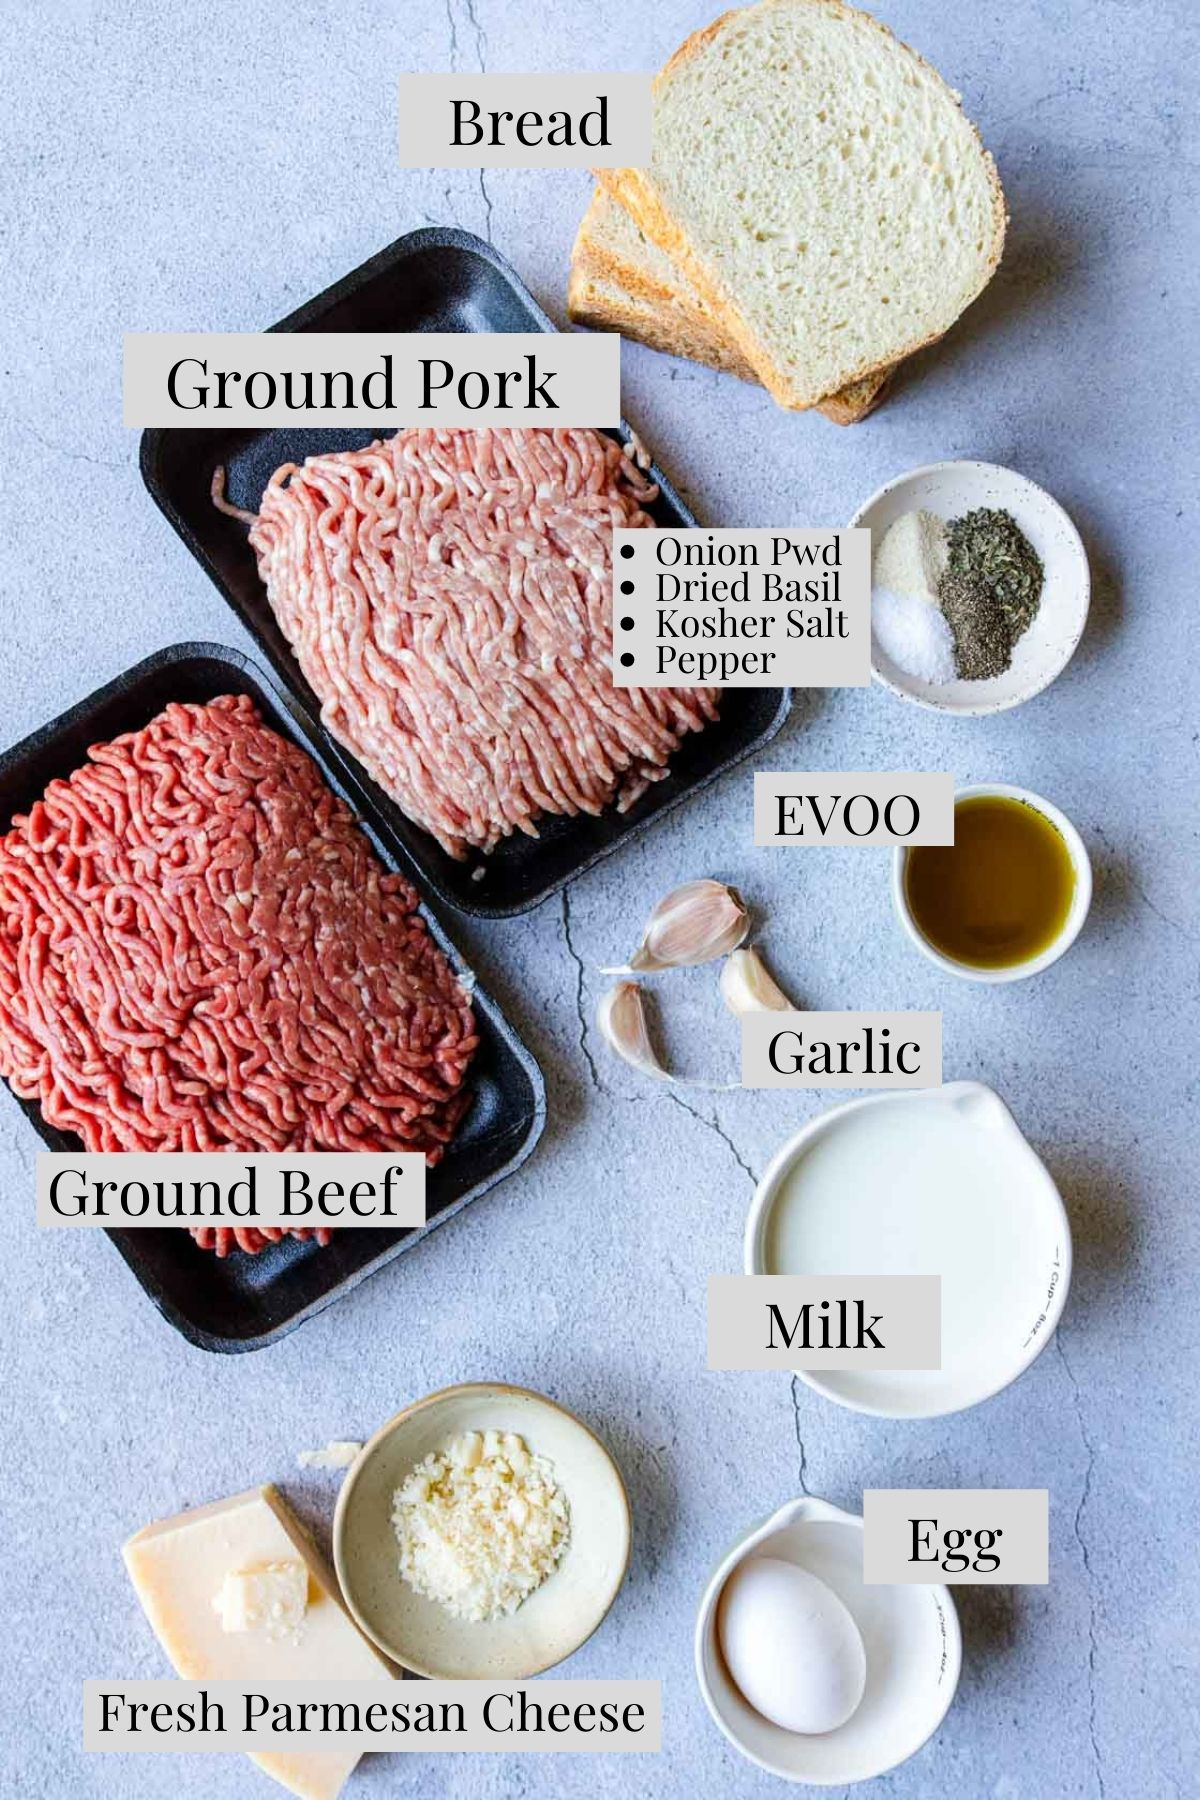 Ingredients with text labels